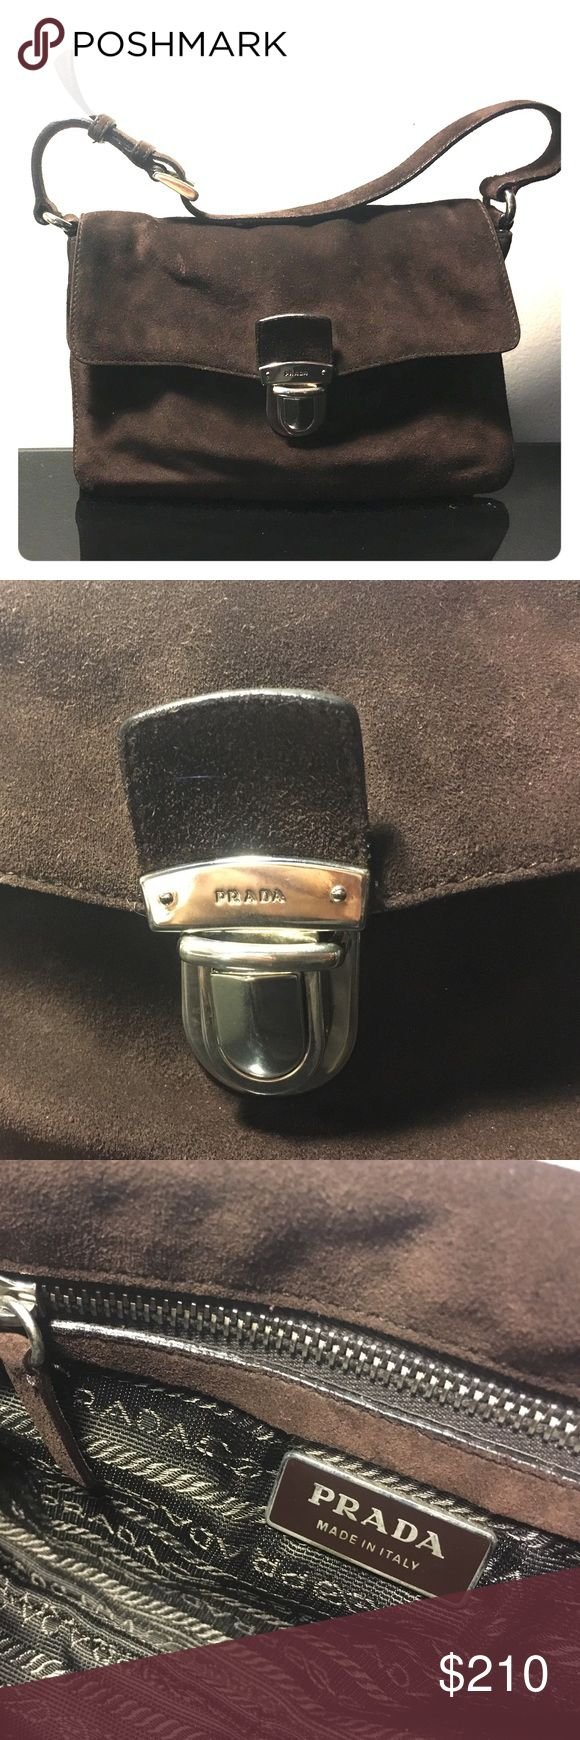 Prada suede handbag Classic Brown suede Prada purse! Pre-owned with Prada authentication card inside! Perfect gift for you, your daughter, or friend! Get it now! Bags Shoulder Bags